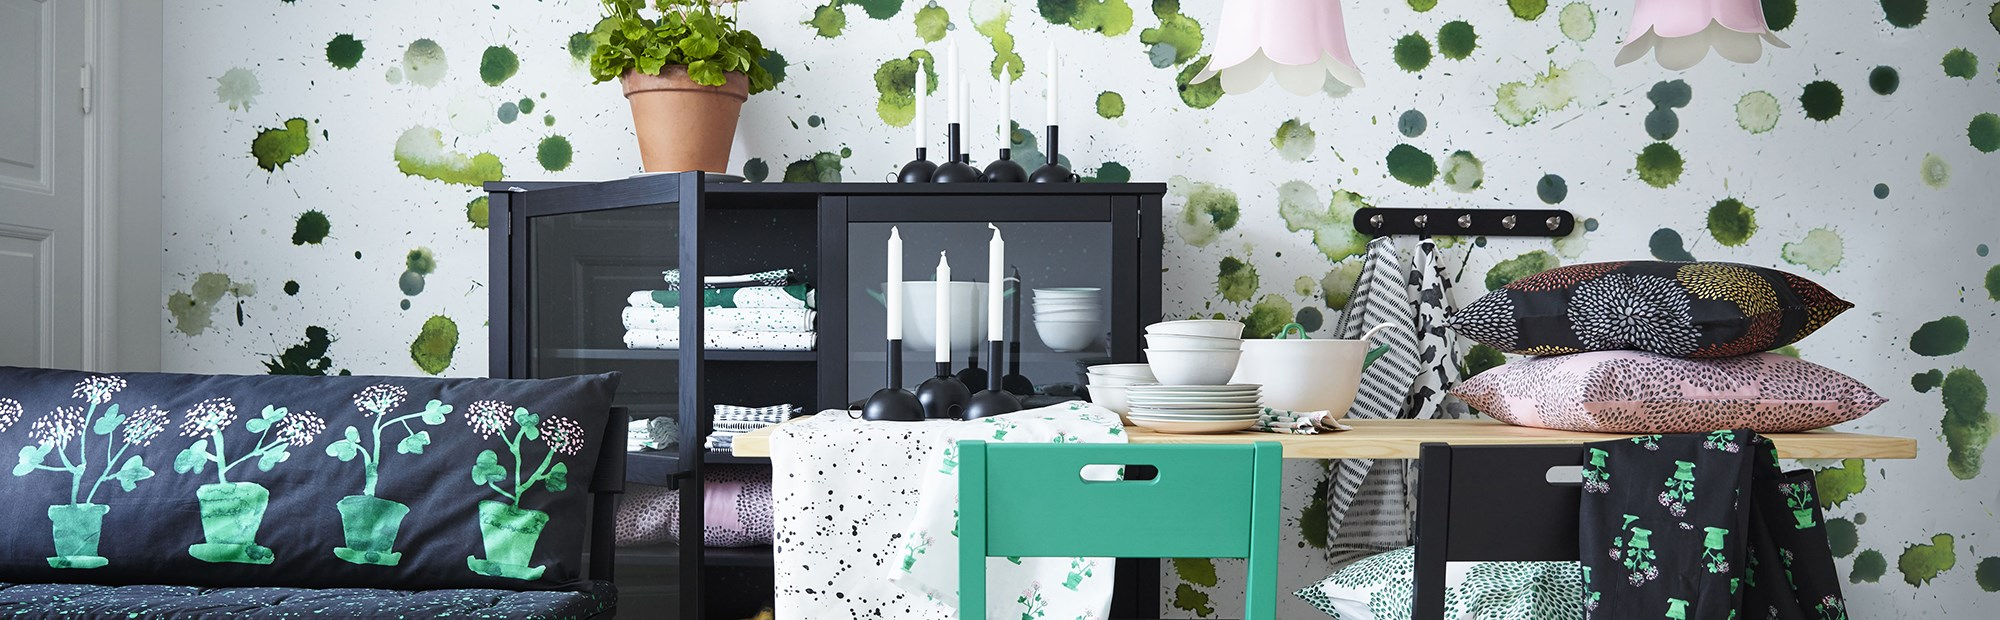 00_PH137616_IKEA_SALLSKAP_limited_2000.jpg